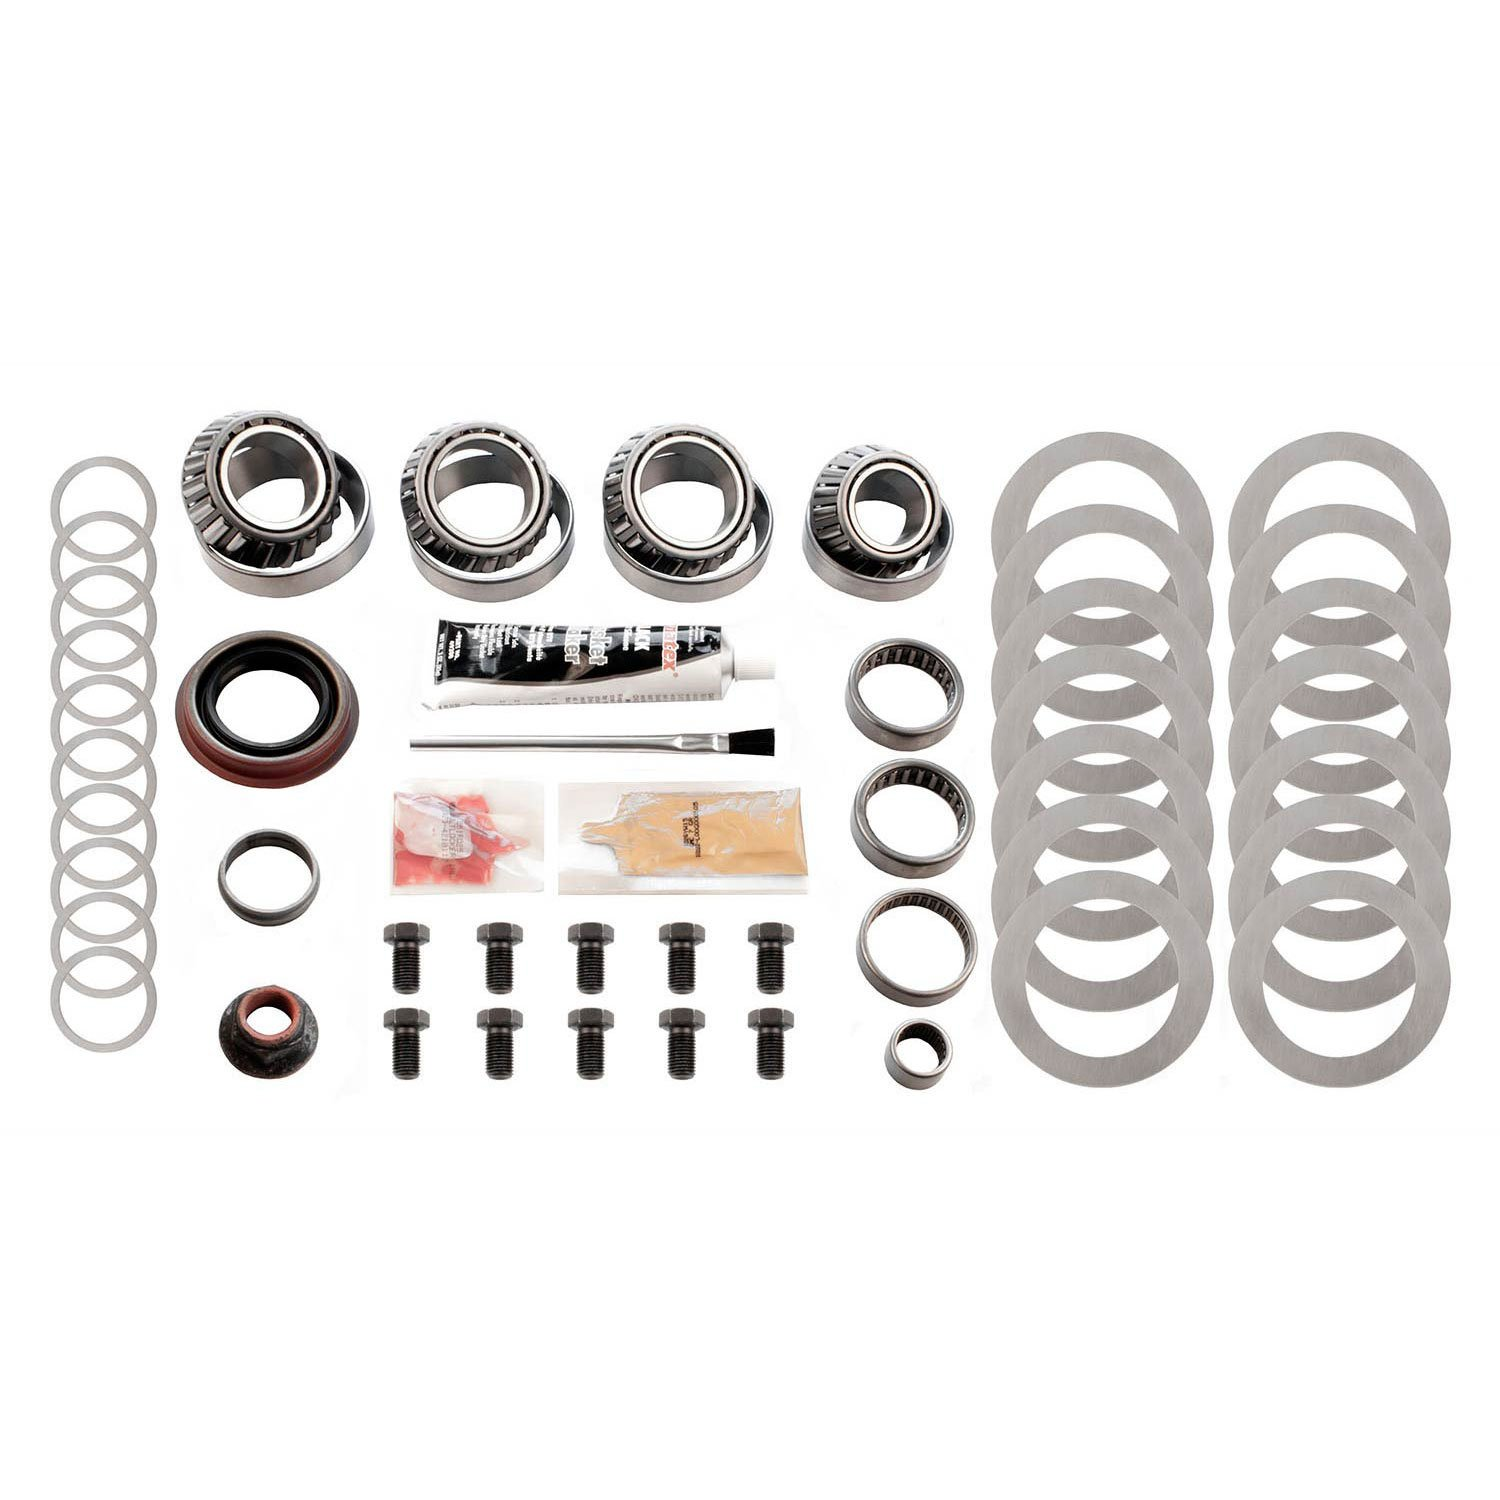 Motive Gear R8.8RIFSMKT Master Bearing Kit with Timken Bearings (Ford 8.8'' IFS '97-UP) by Motive Gear